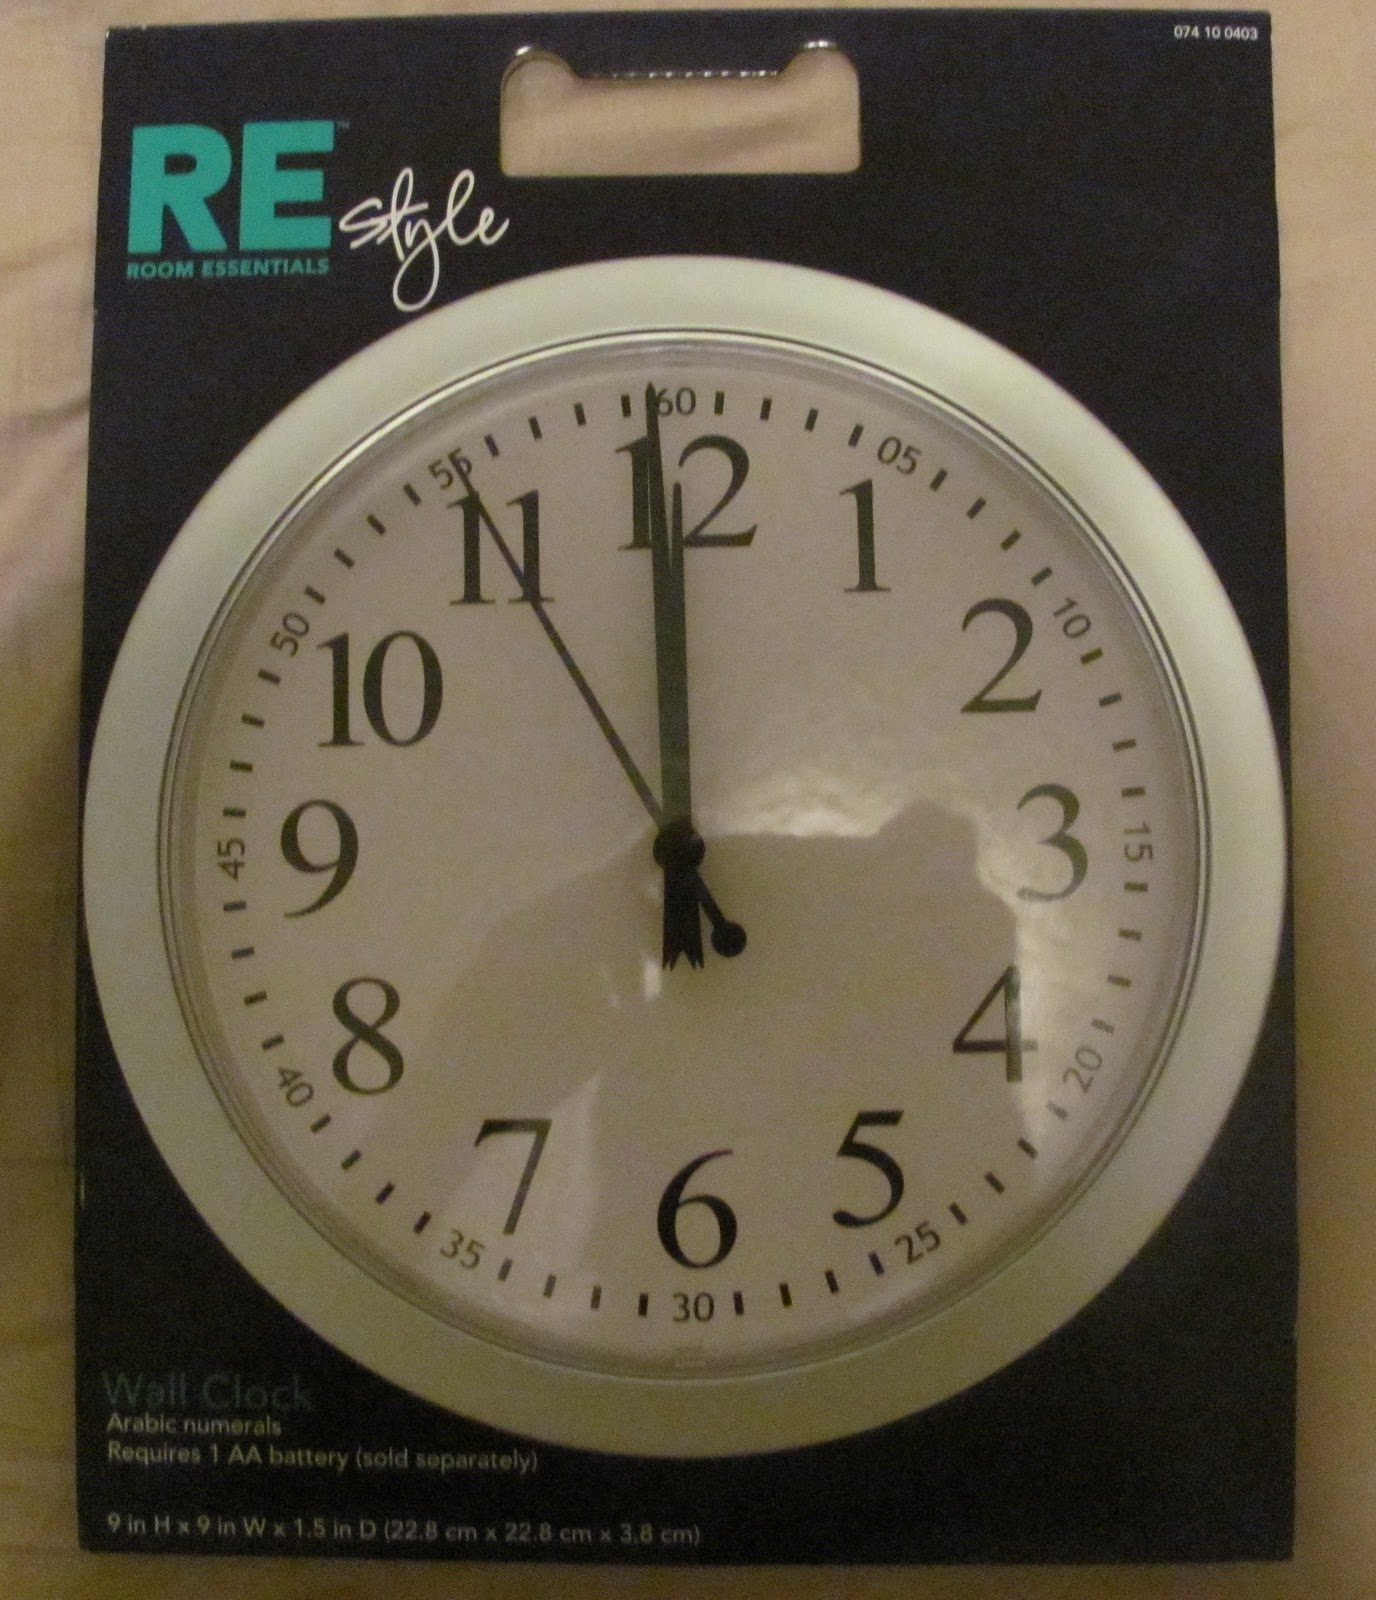 Cavemen go arts and crafts record wall clock just about any cheap clock will do we bought this particular model at target for 399 were basically looking to rip this apart and cannibalize the hands amipublicfo Choice Image